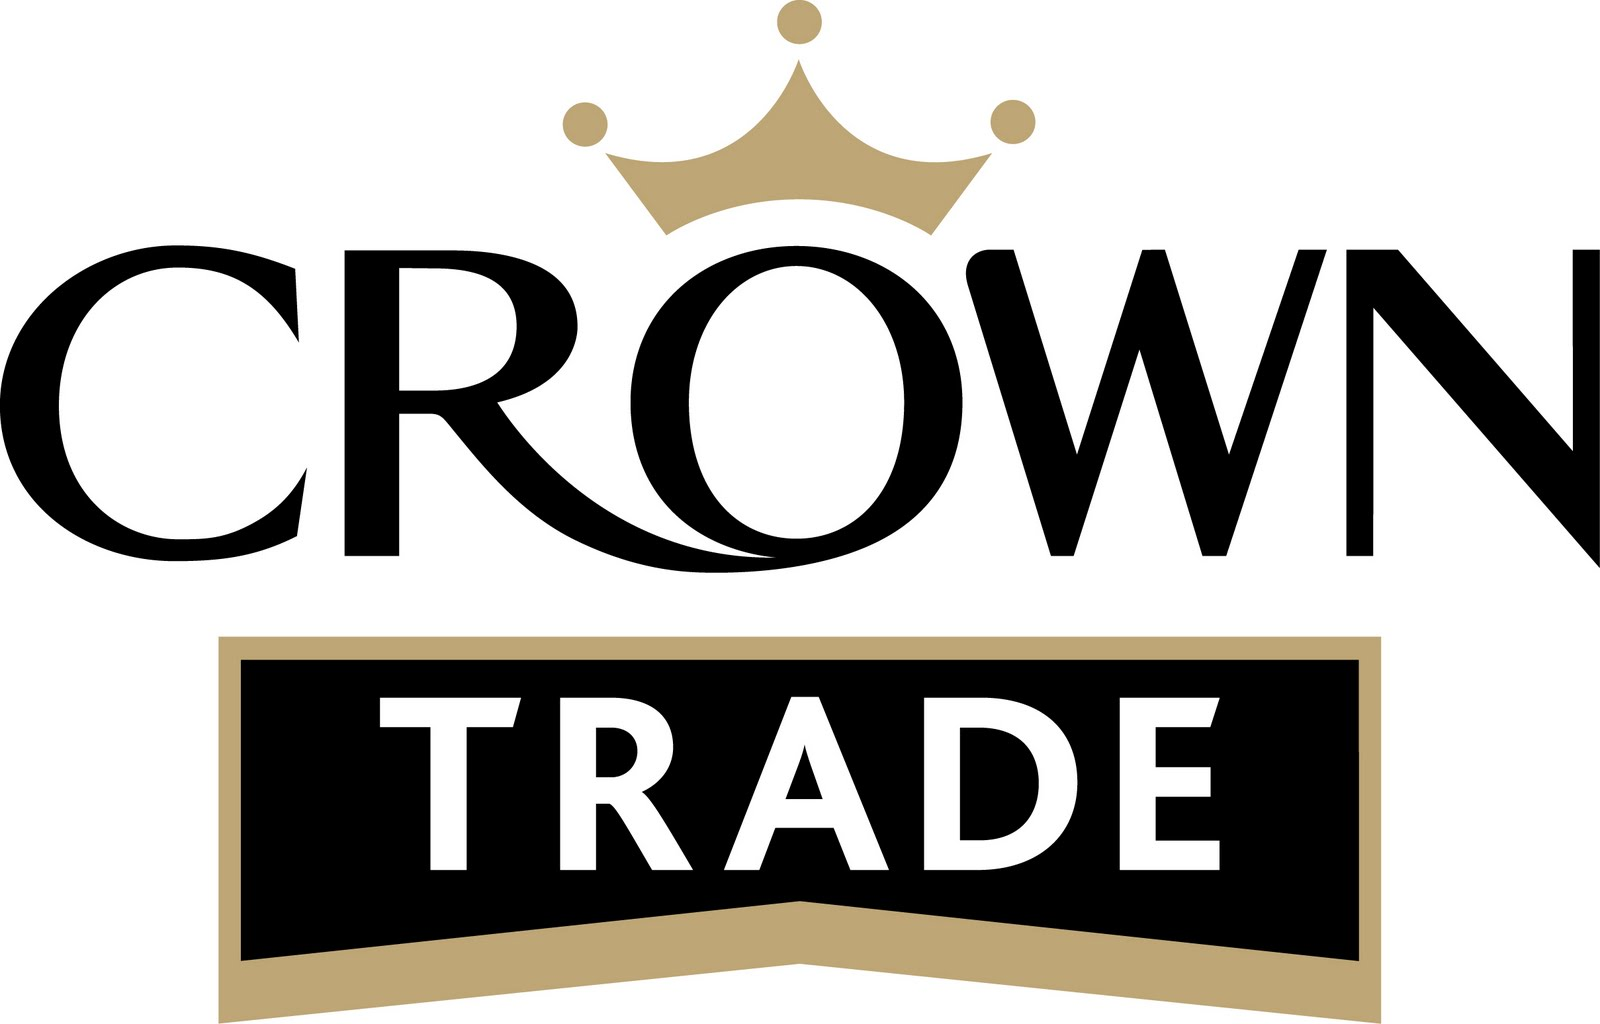 crown logo #191